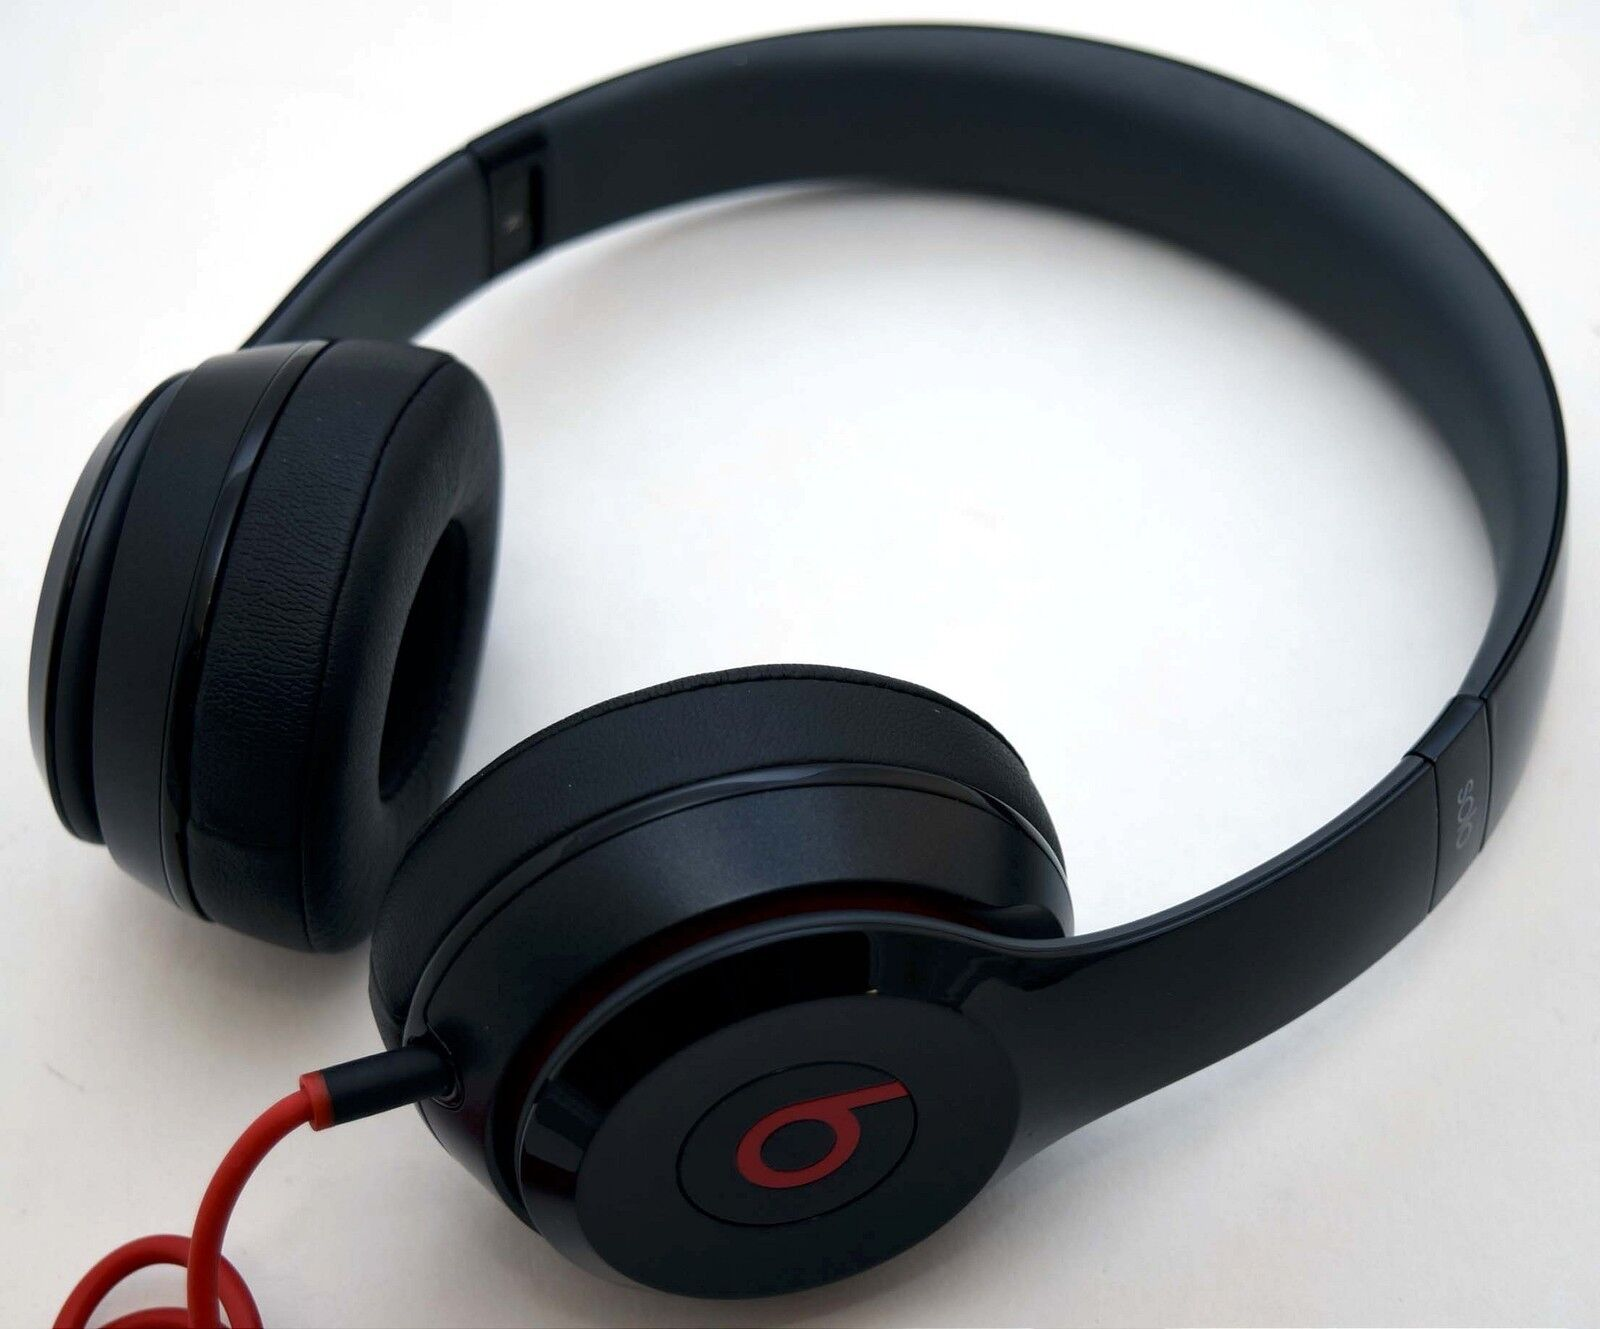 GENUINE Beats by Dr Dre Solo 2 Wired Headphones BLACK Solo2 B0518 ...